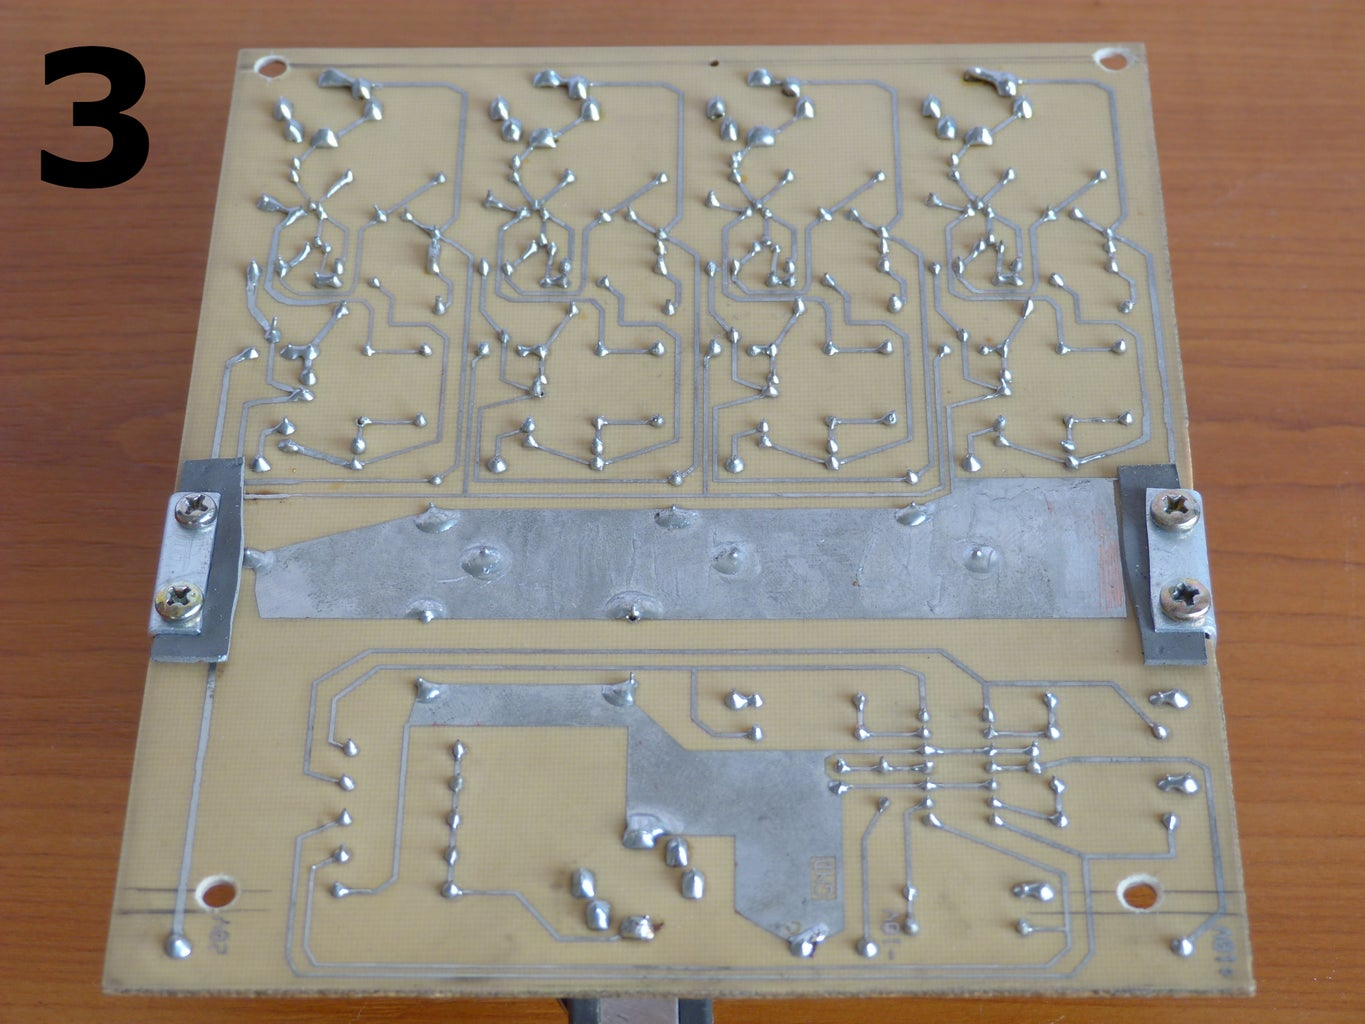 Making and Assembling PCBs.